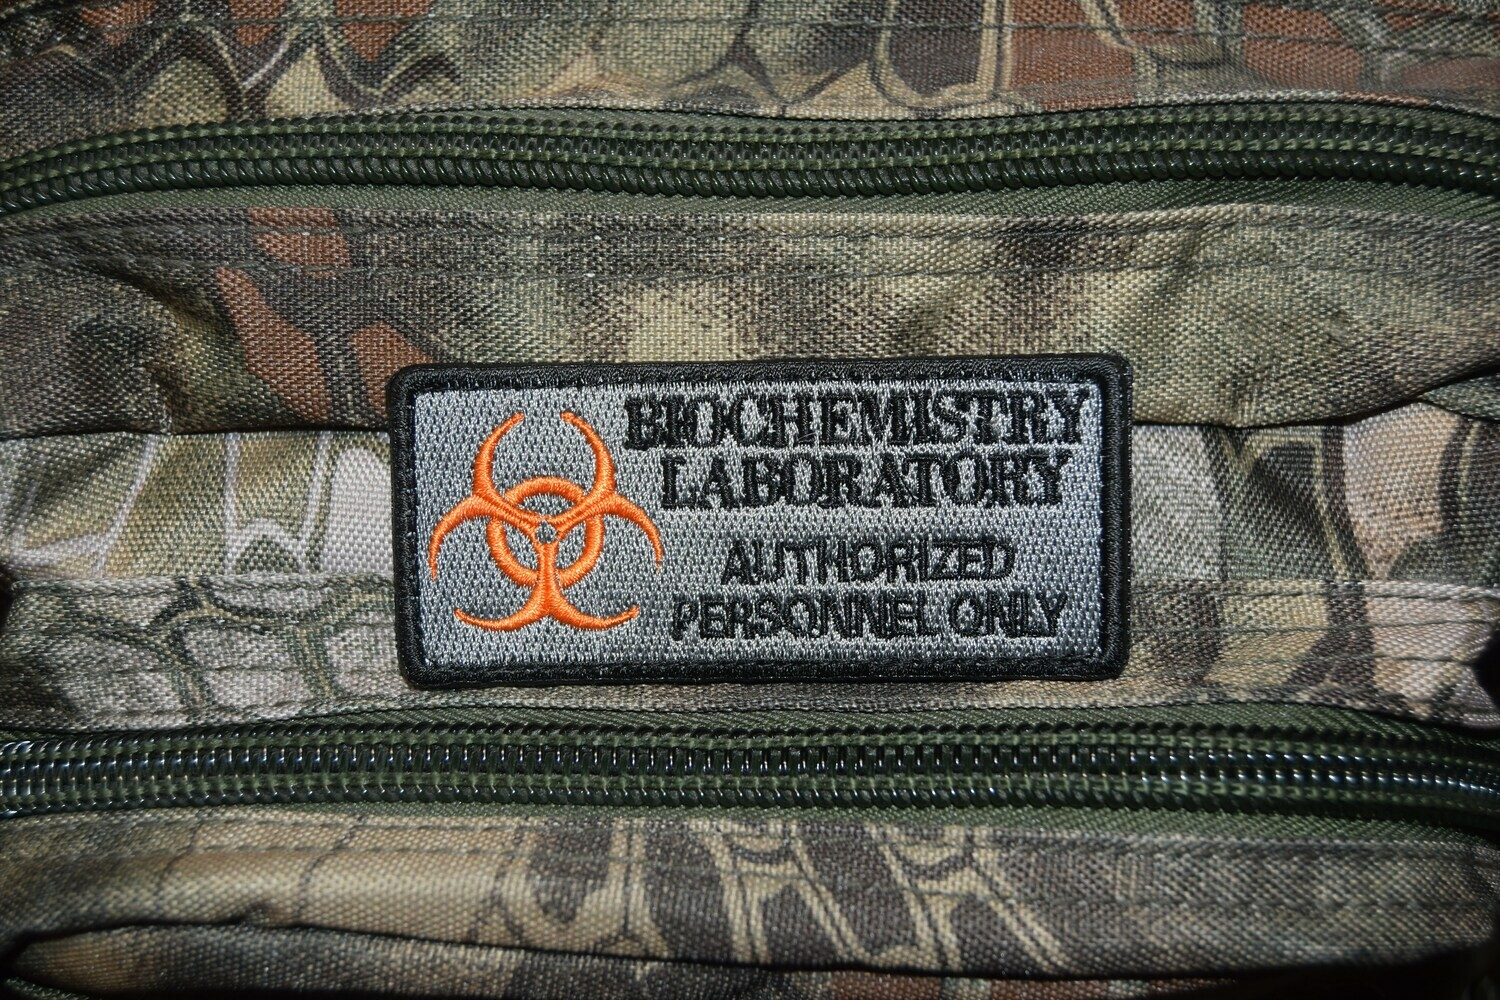 Patch BIOCHEMISTRY LABORATORY AUTHORIZED PERSONNEL ONLY